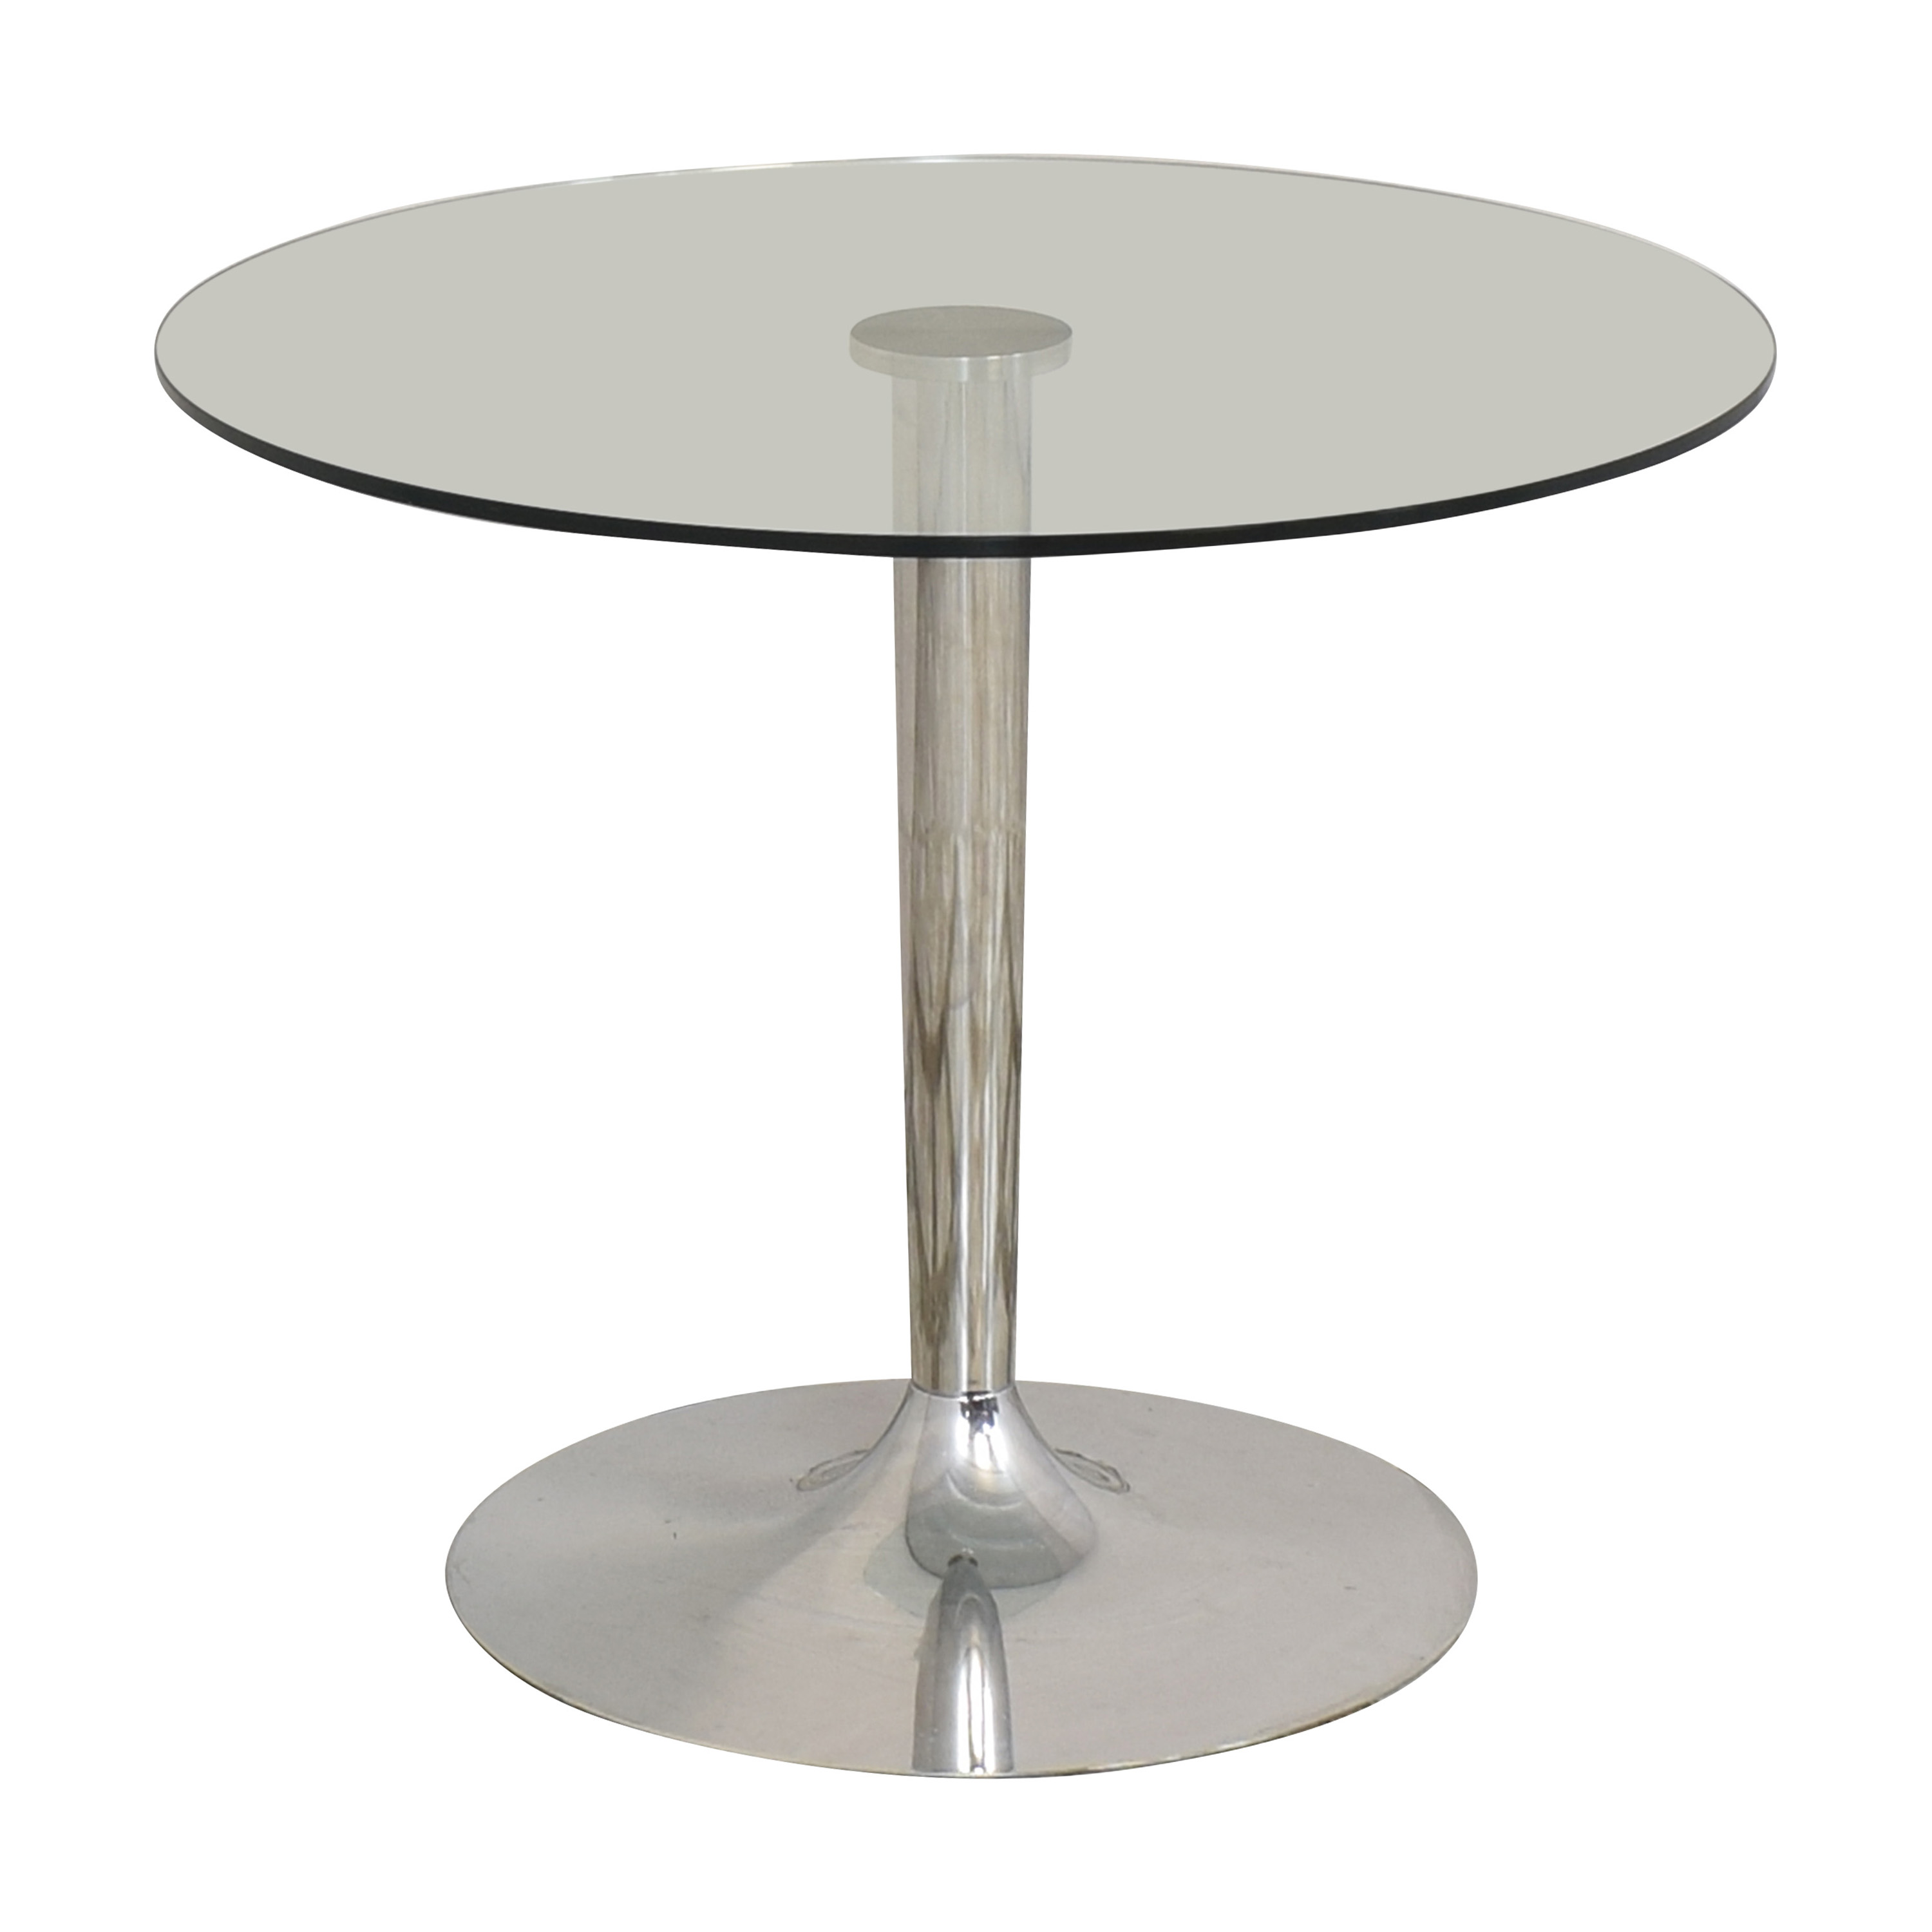 Calligaris Calligaris Planet Dining Table on sale